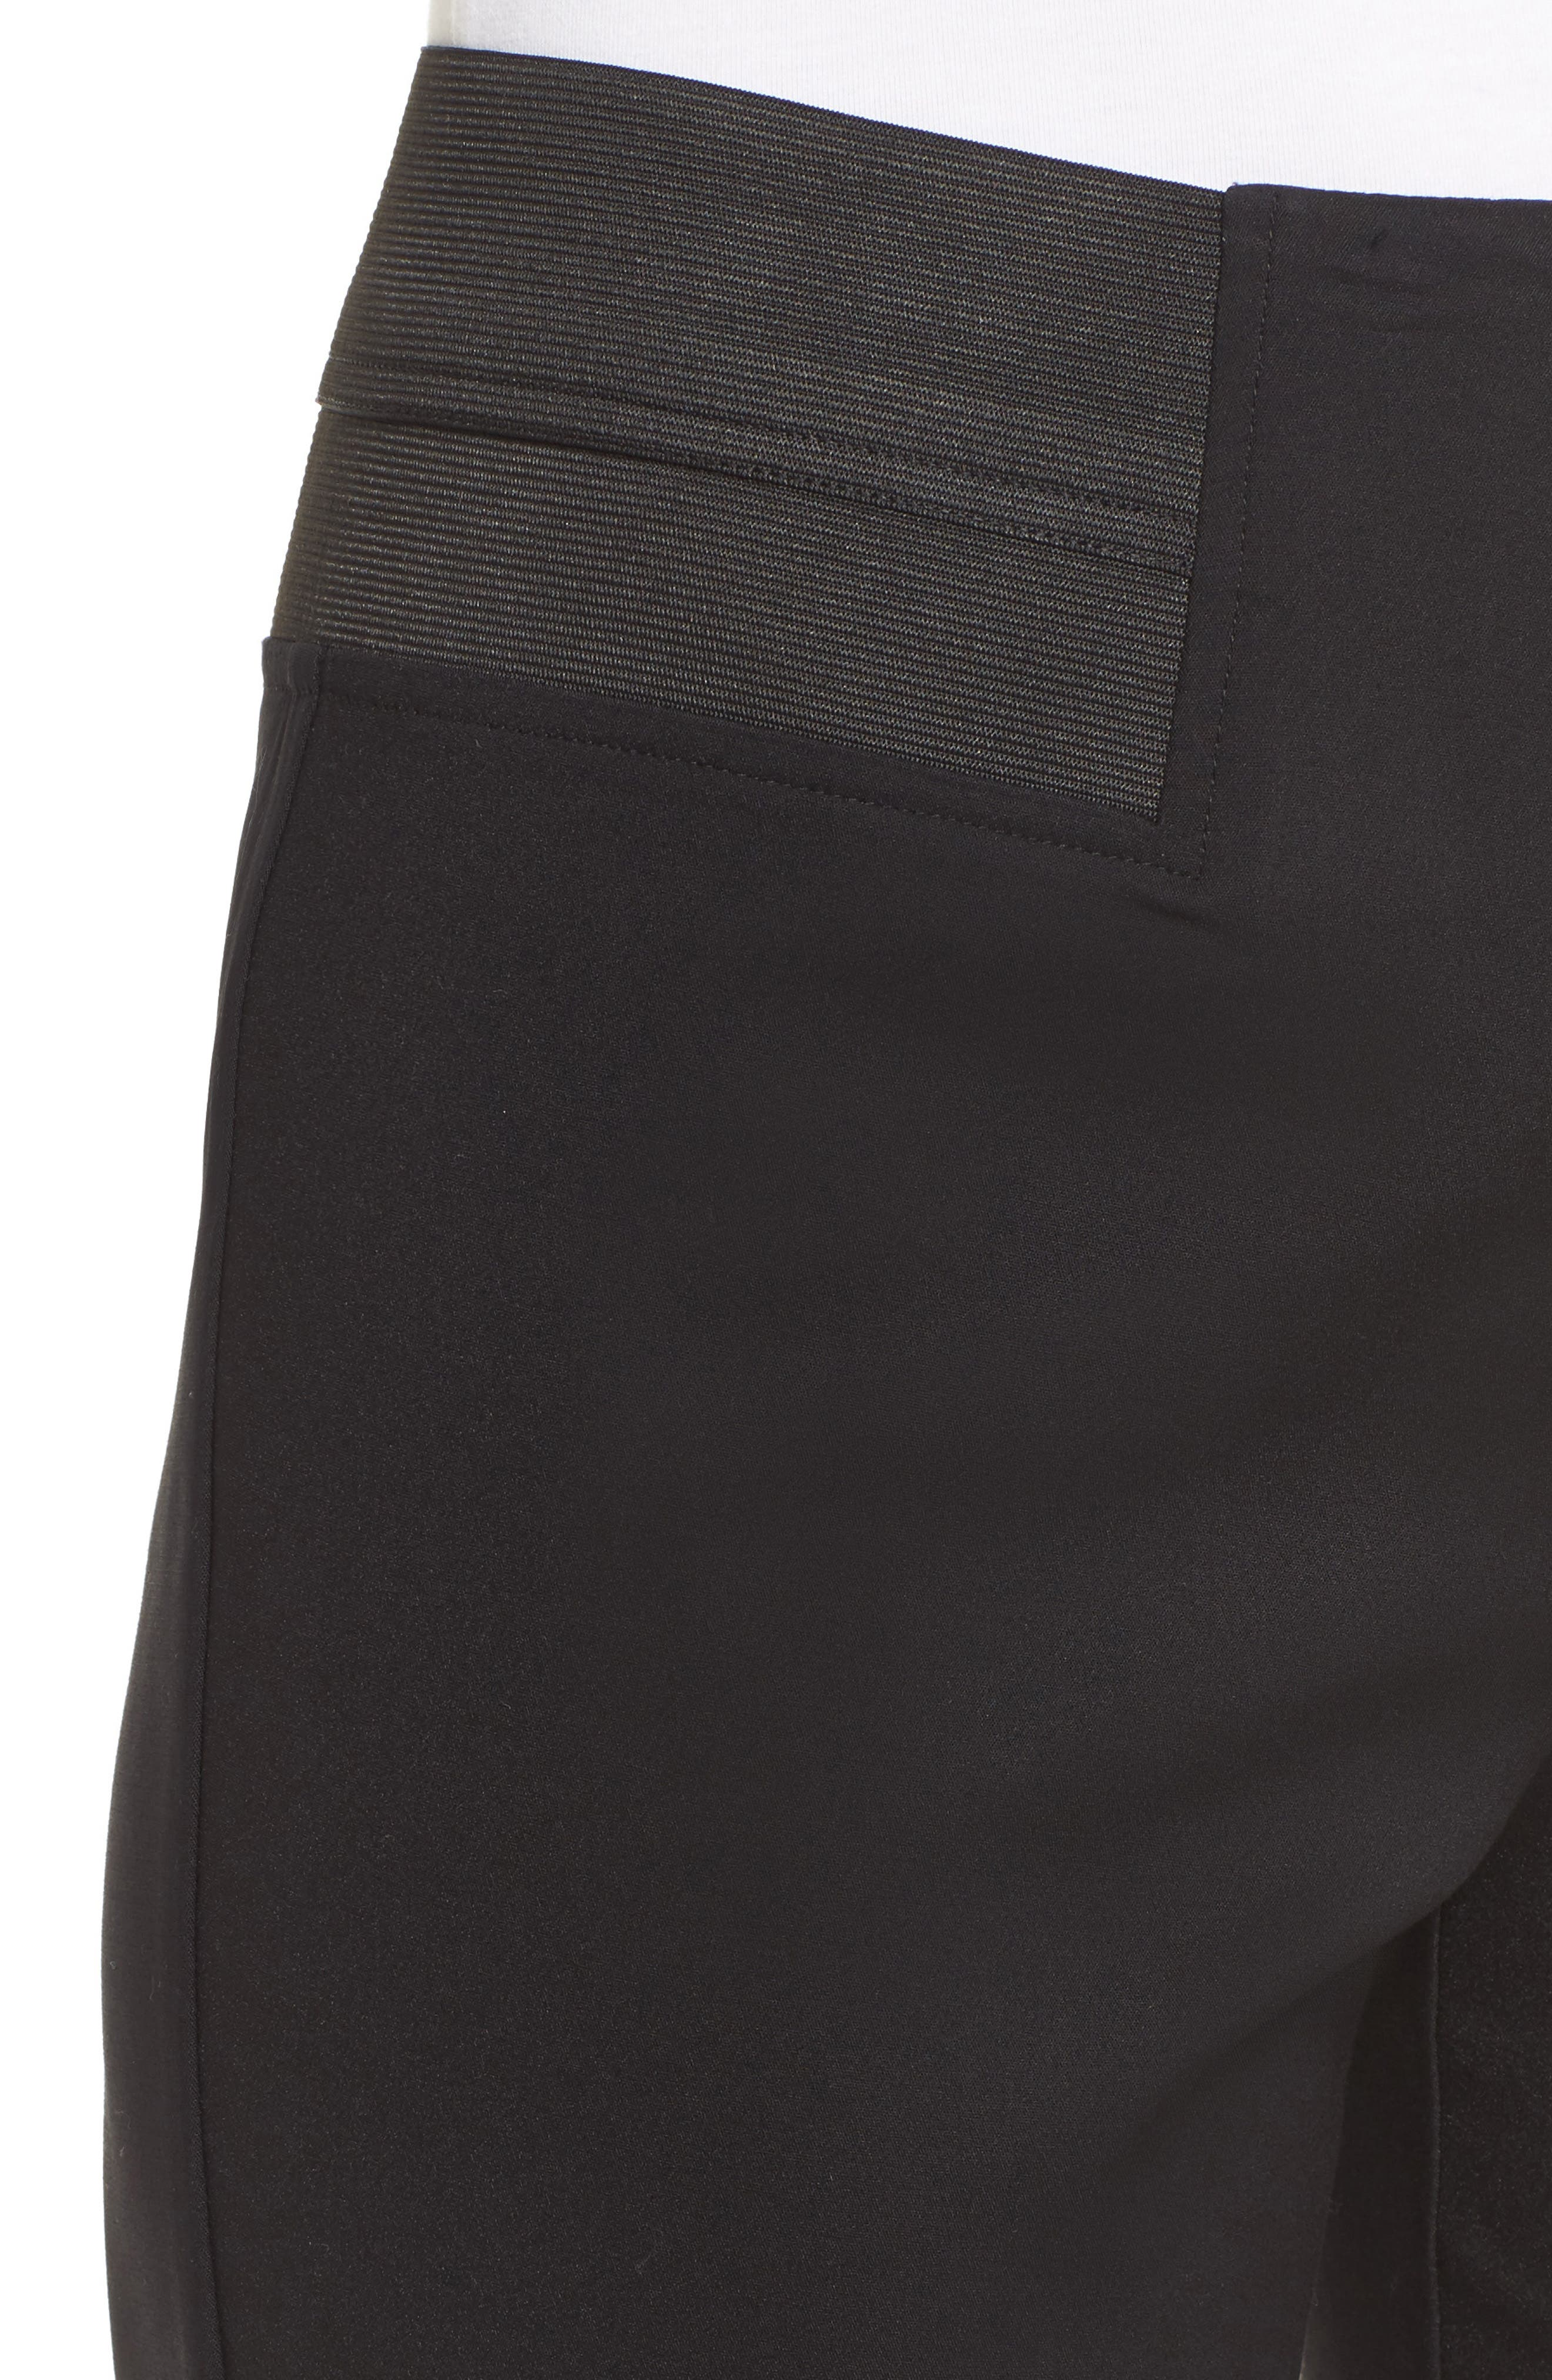 Ming Want Pull-On Ankle Pants,                             Alternate thumbnail 4, color,                             Black